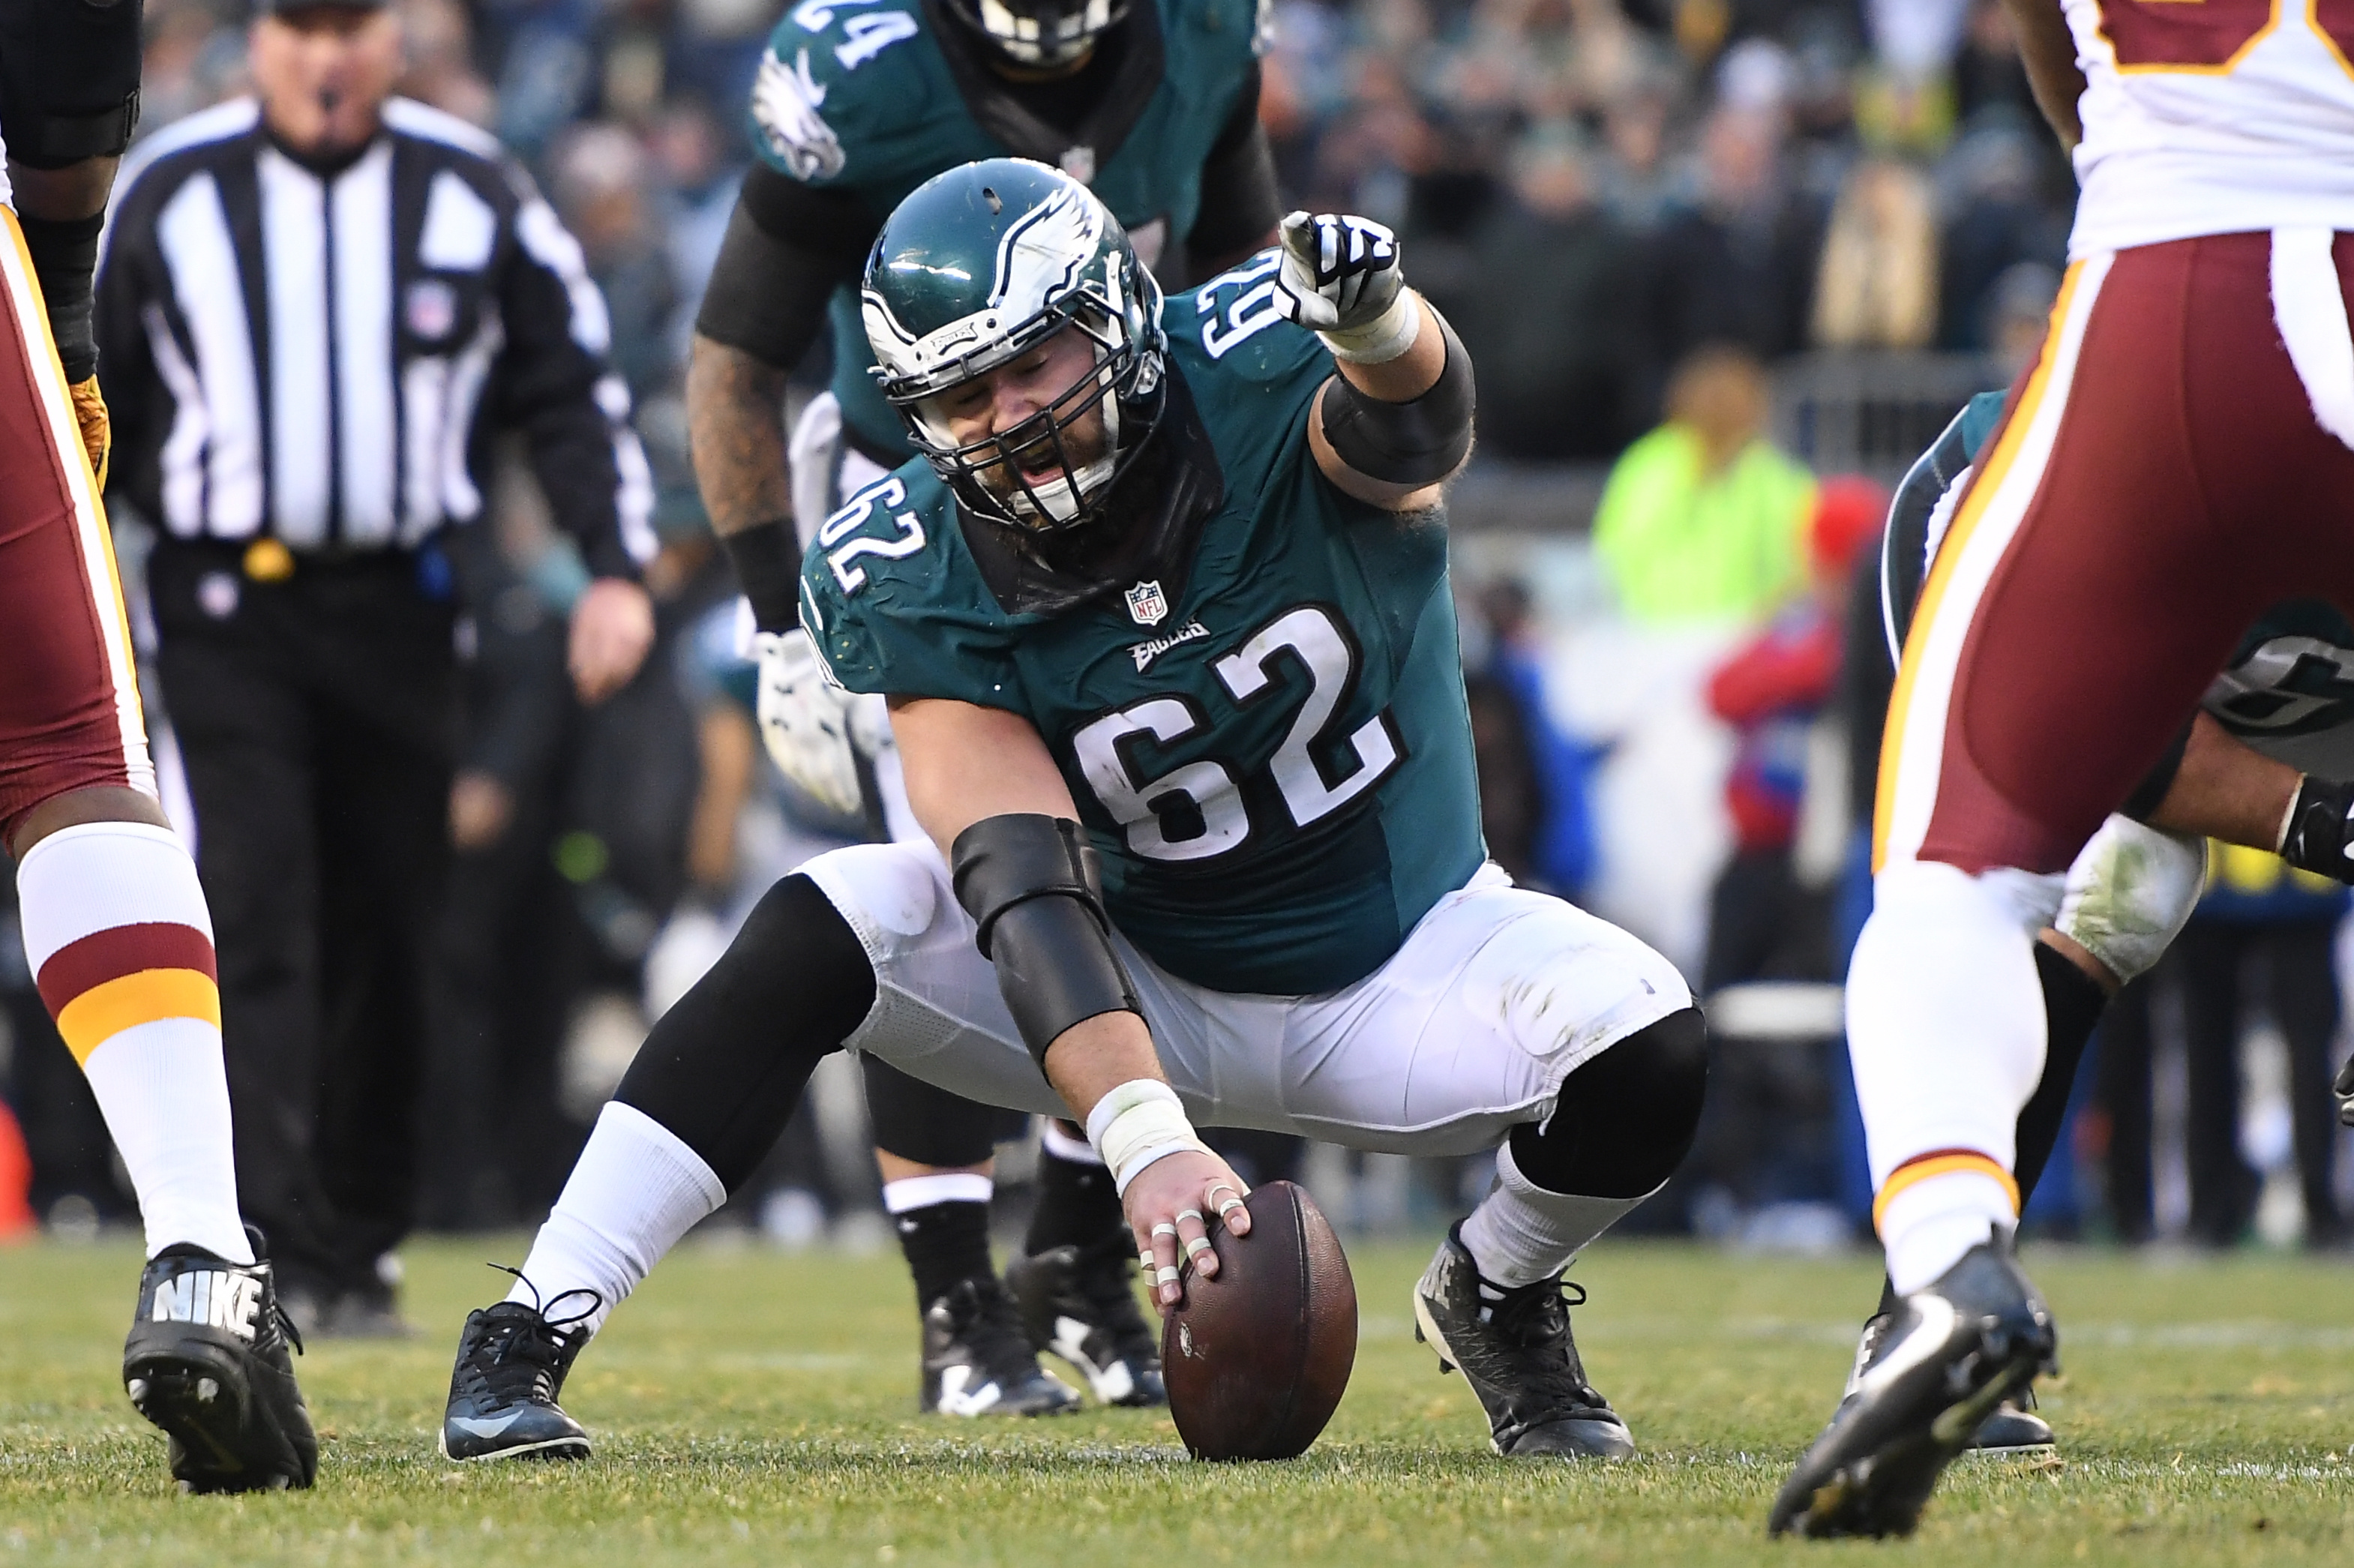 Jason Kelce pointing out an opposing player during a game